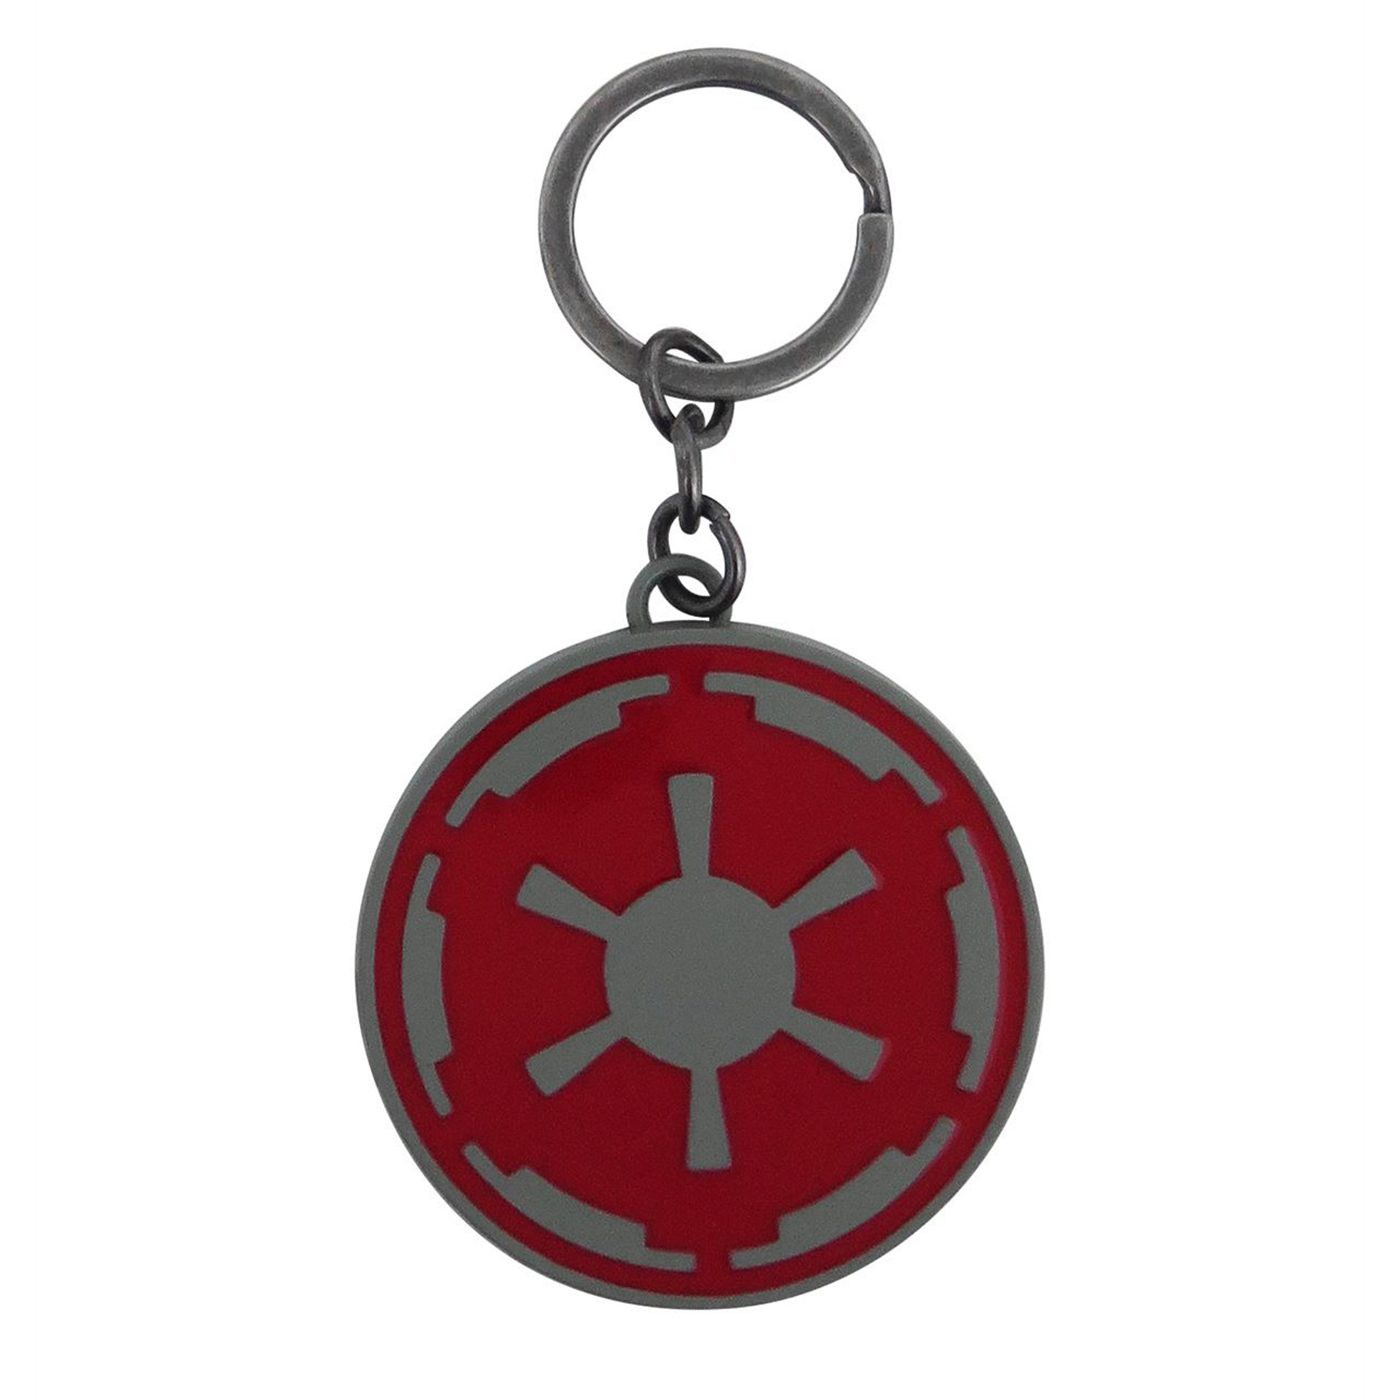 Star Wars Red Imperial Crest Metal Keychain